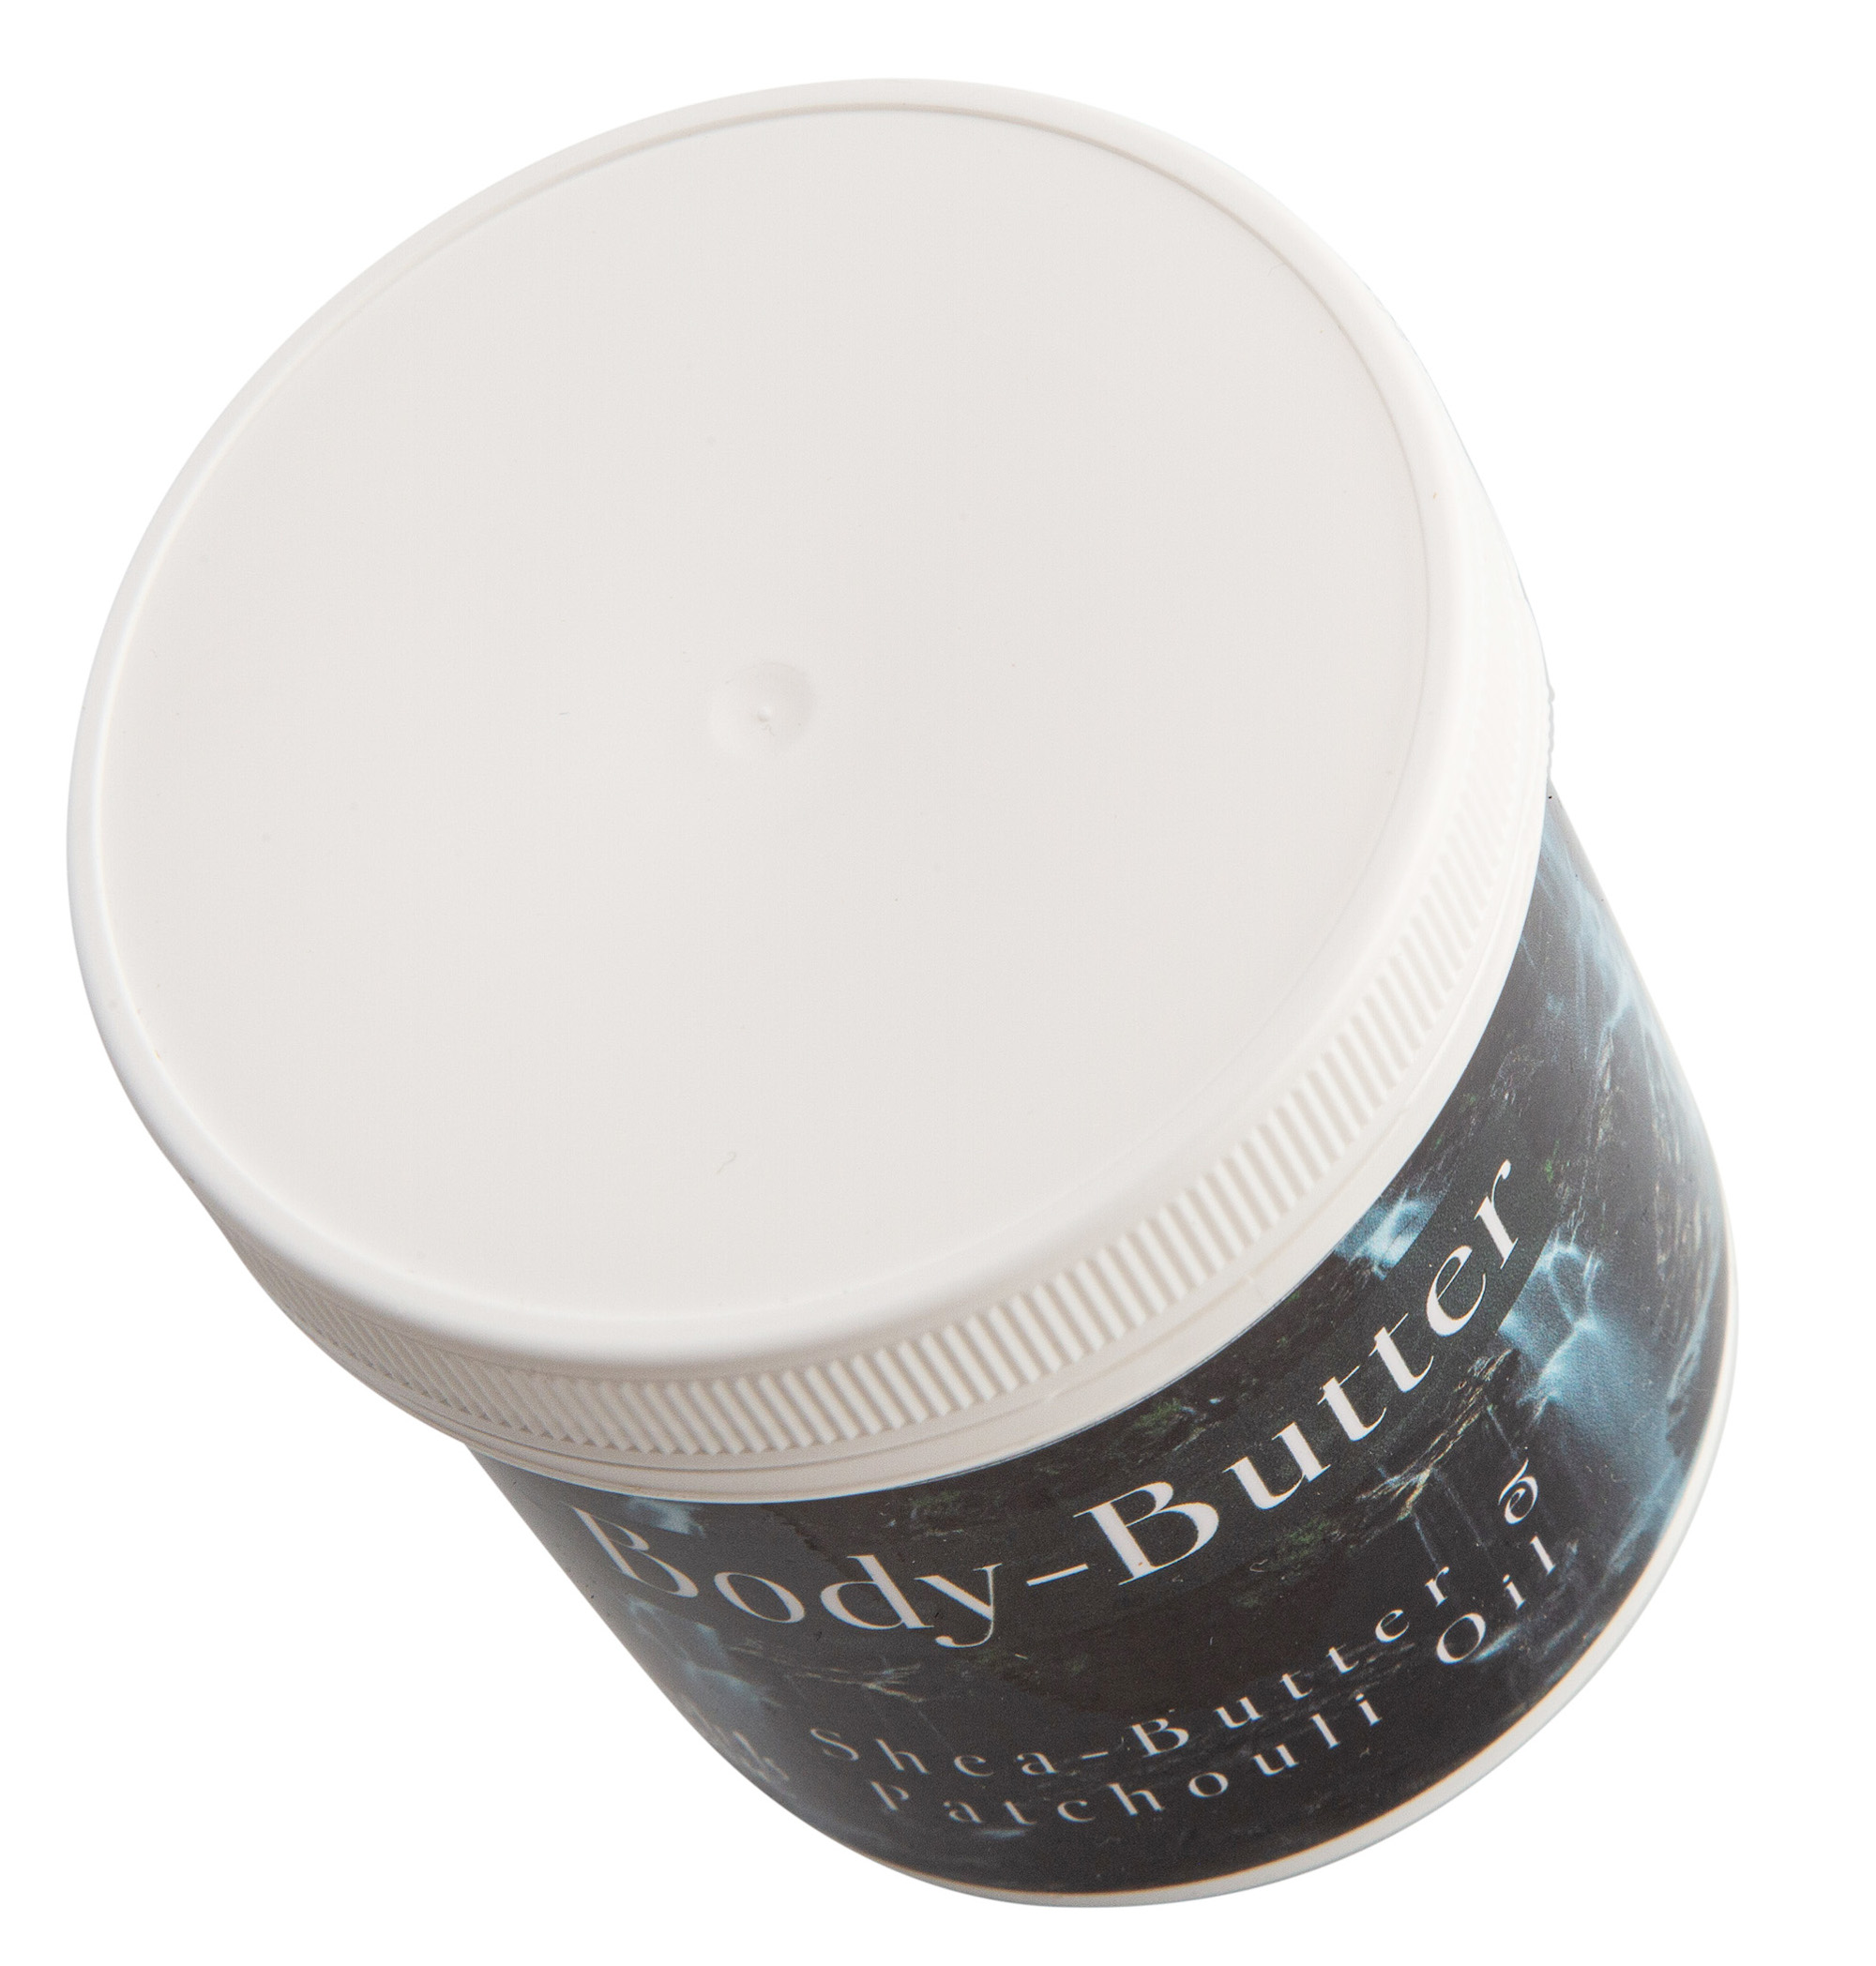 Patchouly Body Butter